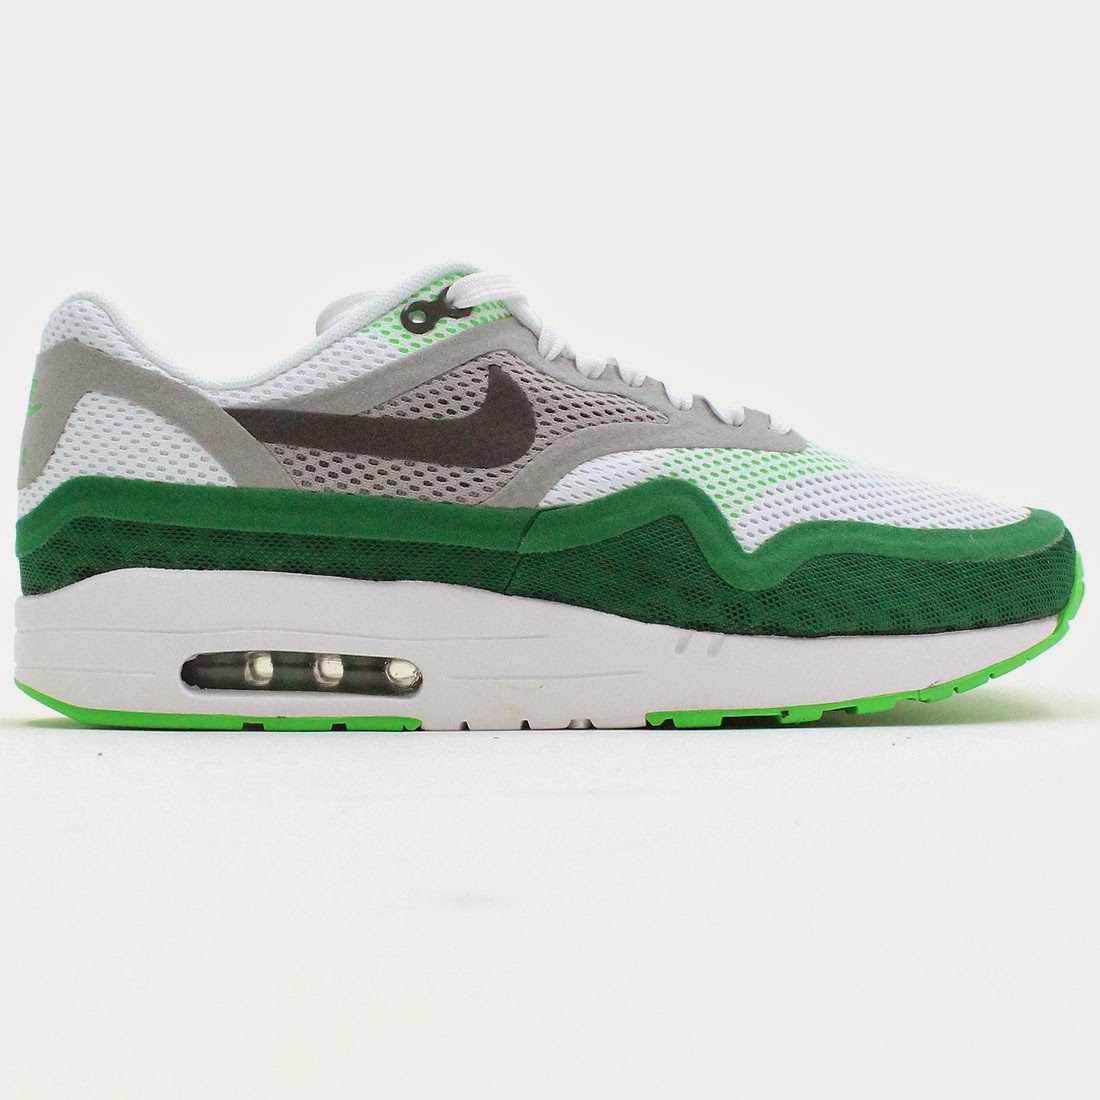 detailed look cd27b 6036a ... BR in both green and blue colourways (pictured below) in the classic Air  Max 1 shape with a more lightweight breathable mesh and features hidden  seams ...